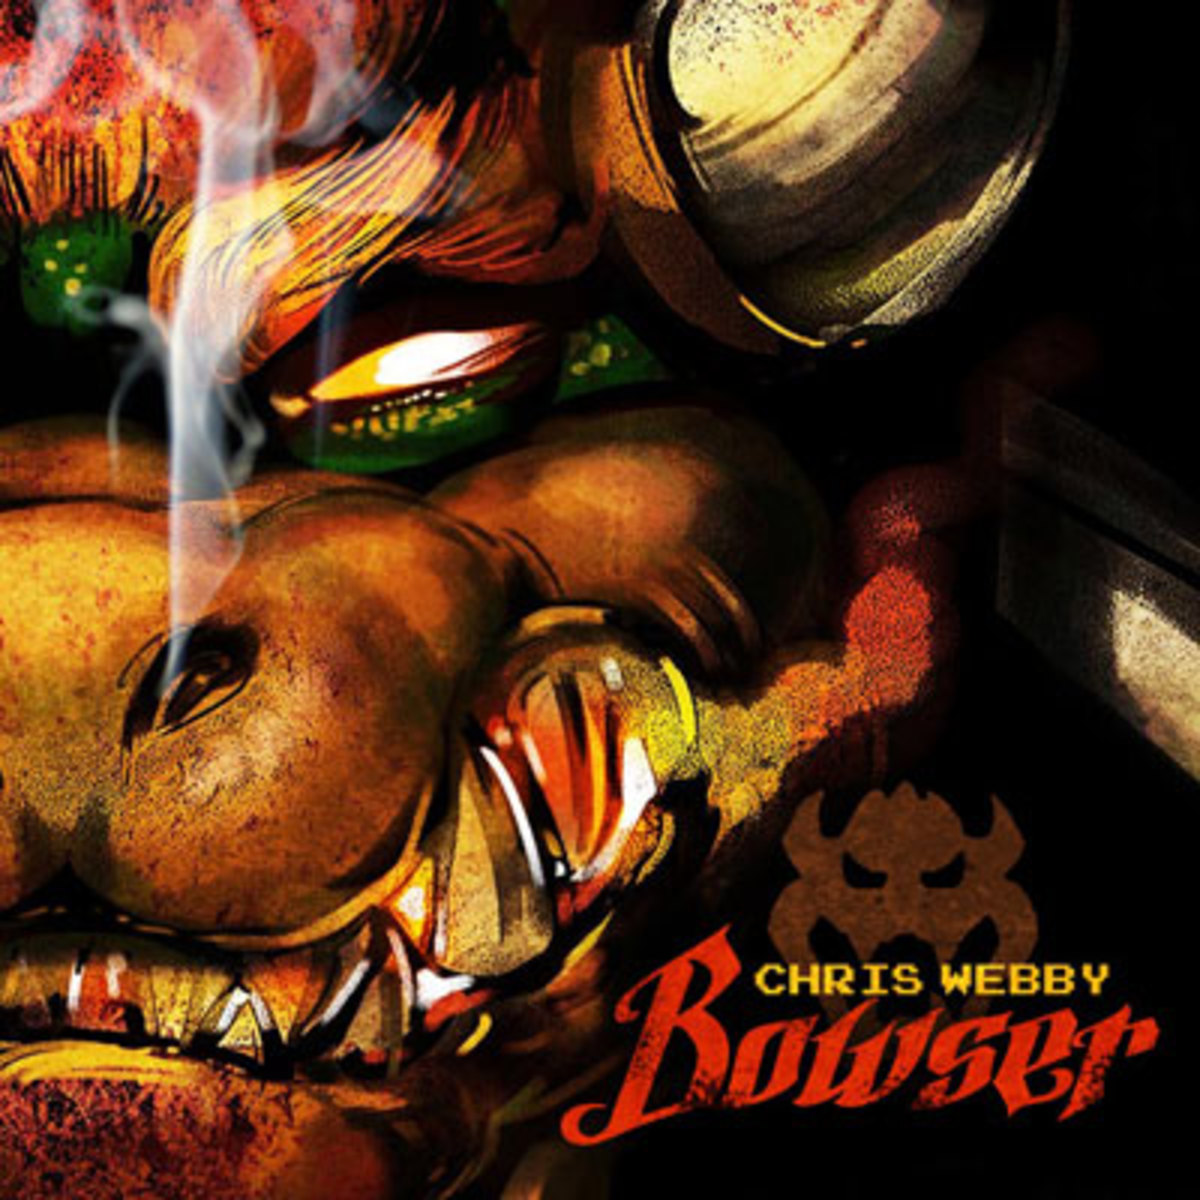 chriswebby-bowser.jpg